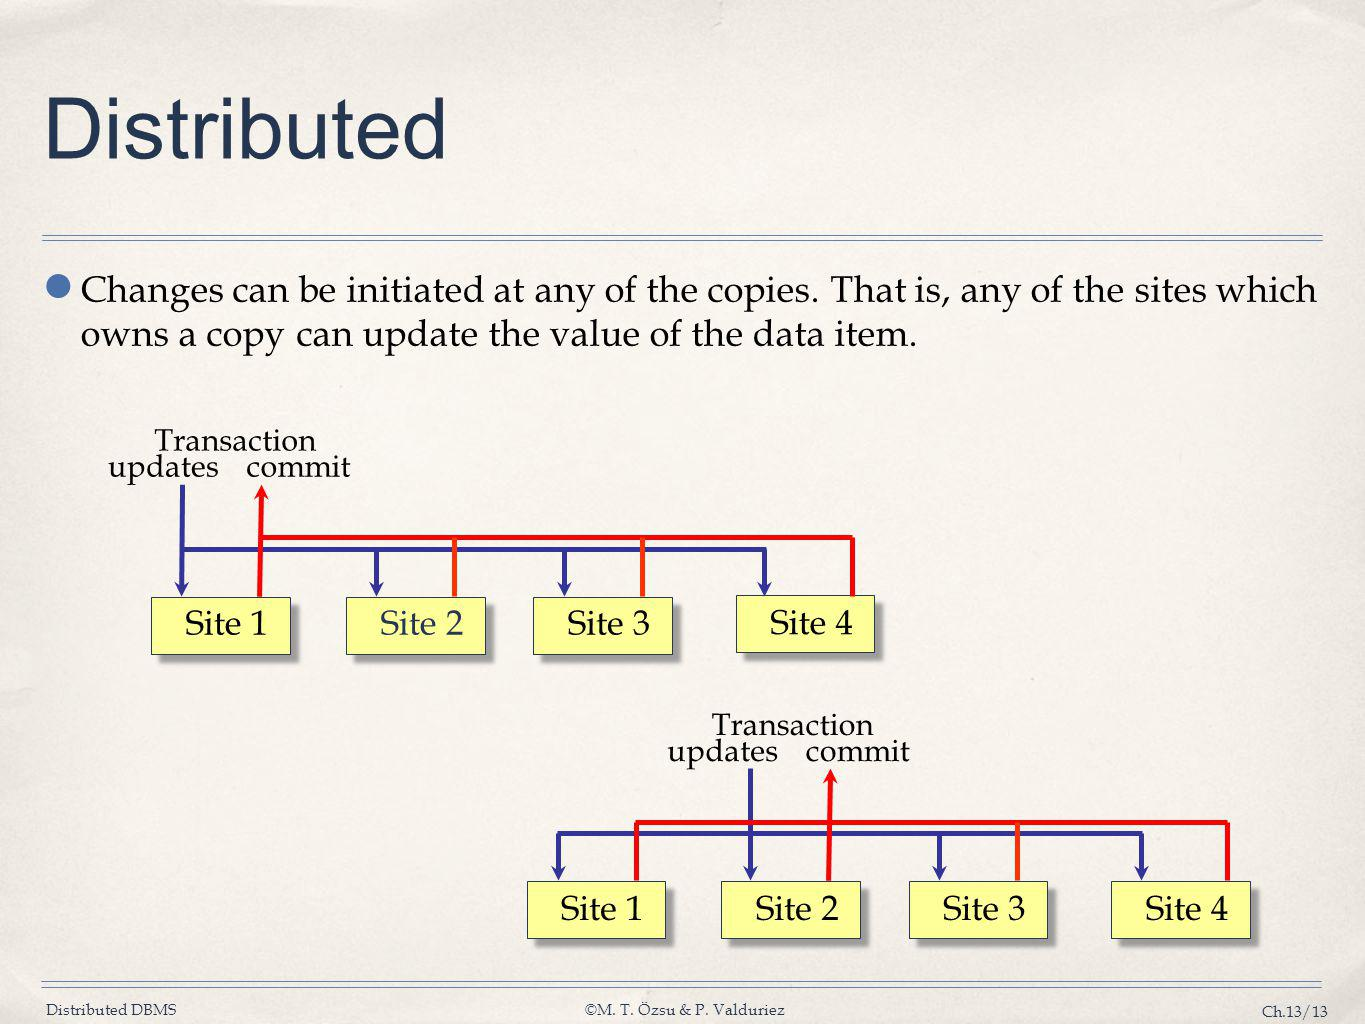 Distributed DBMS©M. T. Özsu & P. Valduriez Ch.13/13 Distributed ● Changes can be initiated at any of the copies. That is, any of the sites which owns